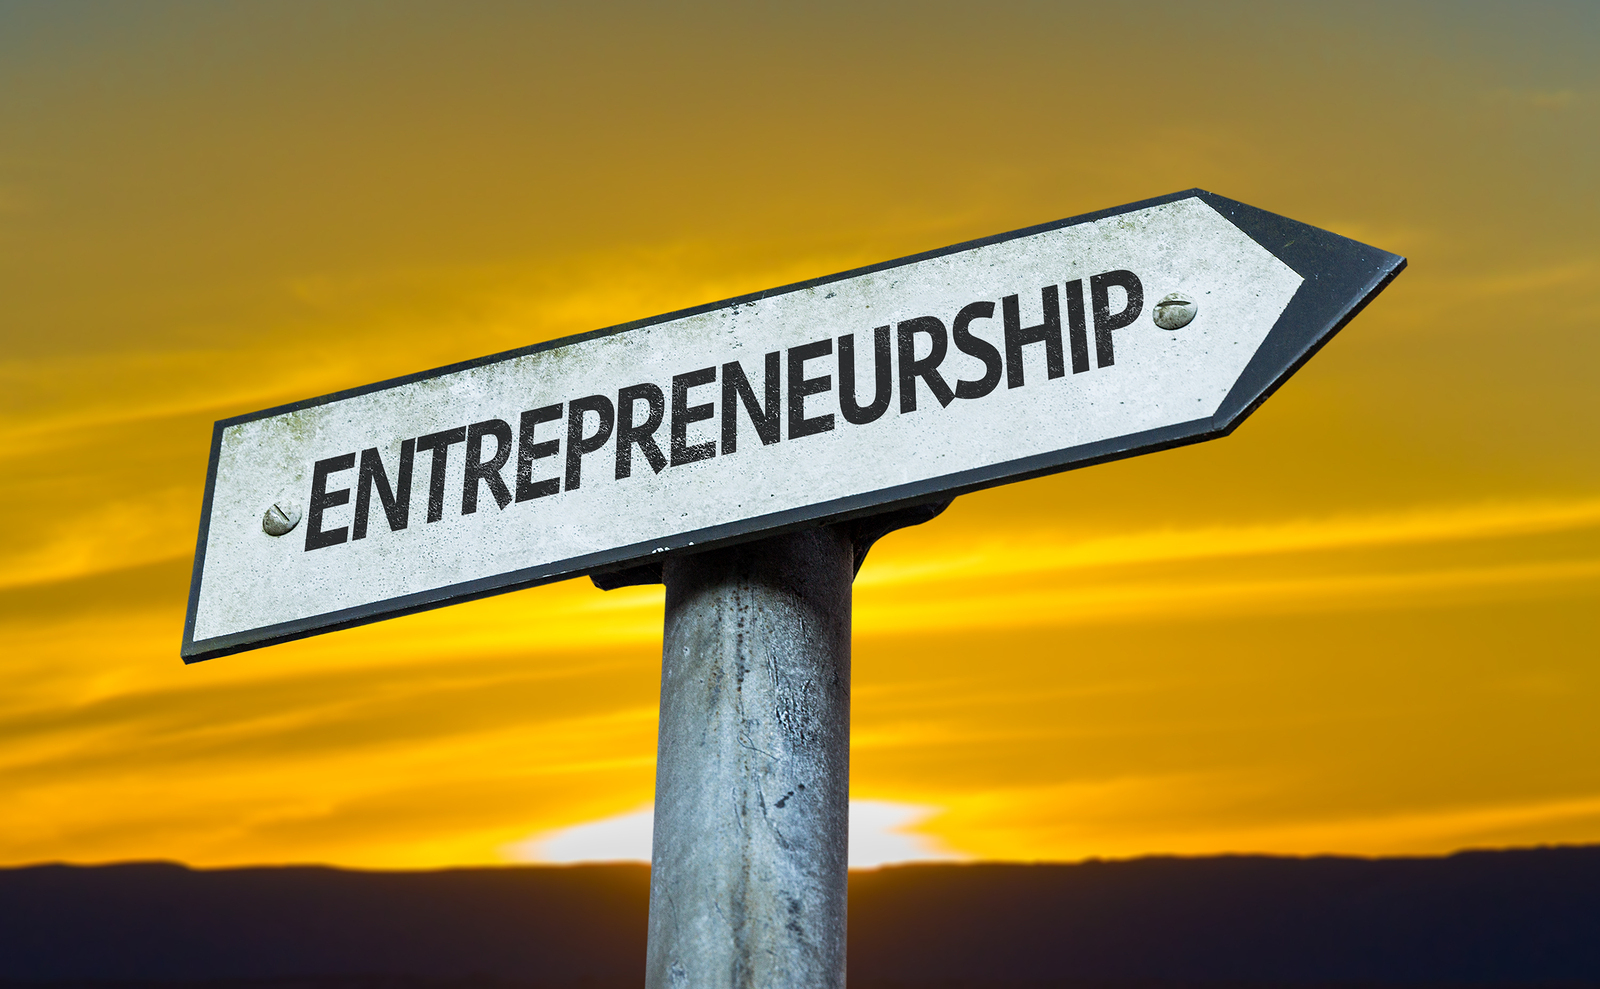 6 Essentials of Entrepreneurship